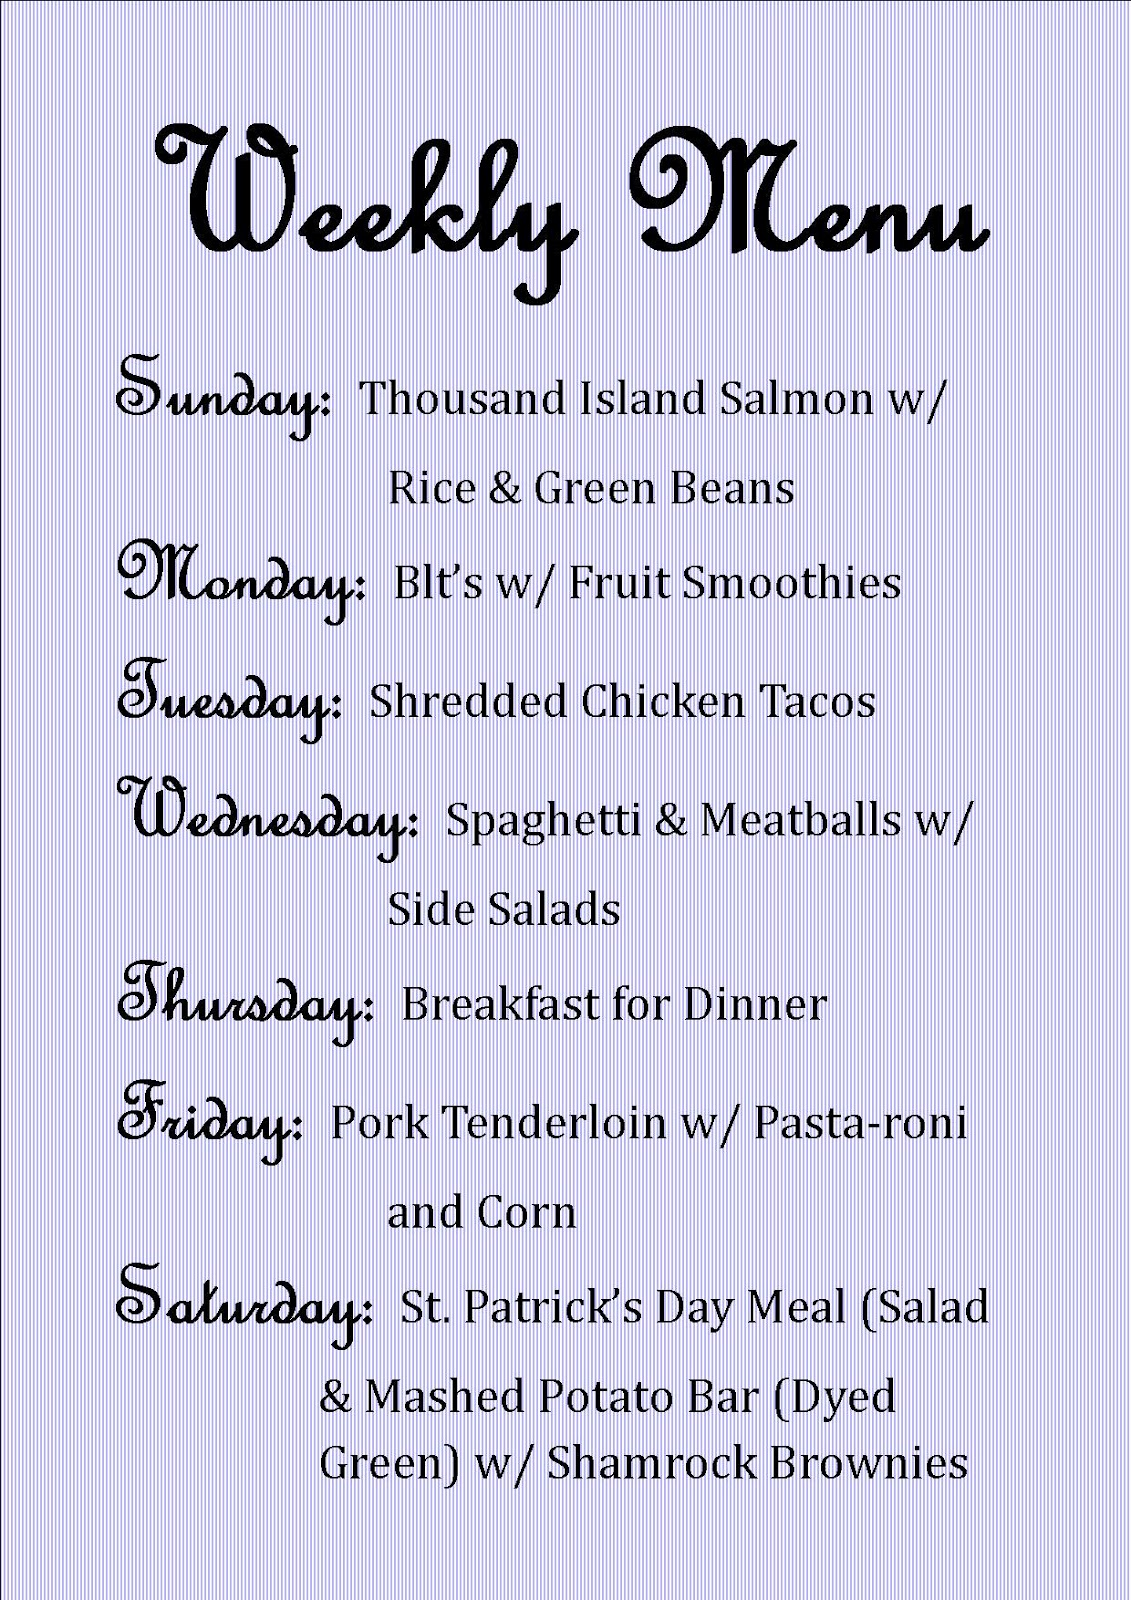 Weekly Menu: March 11-17 - Pretty Providence